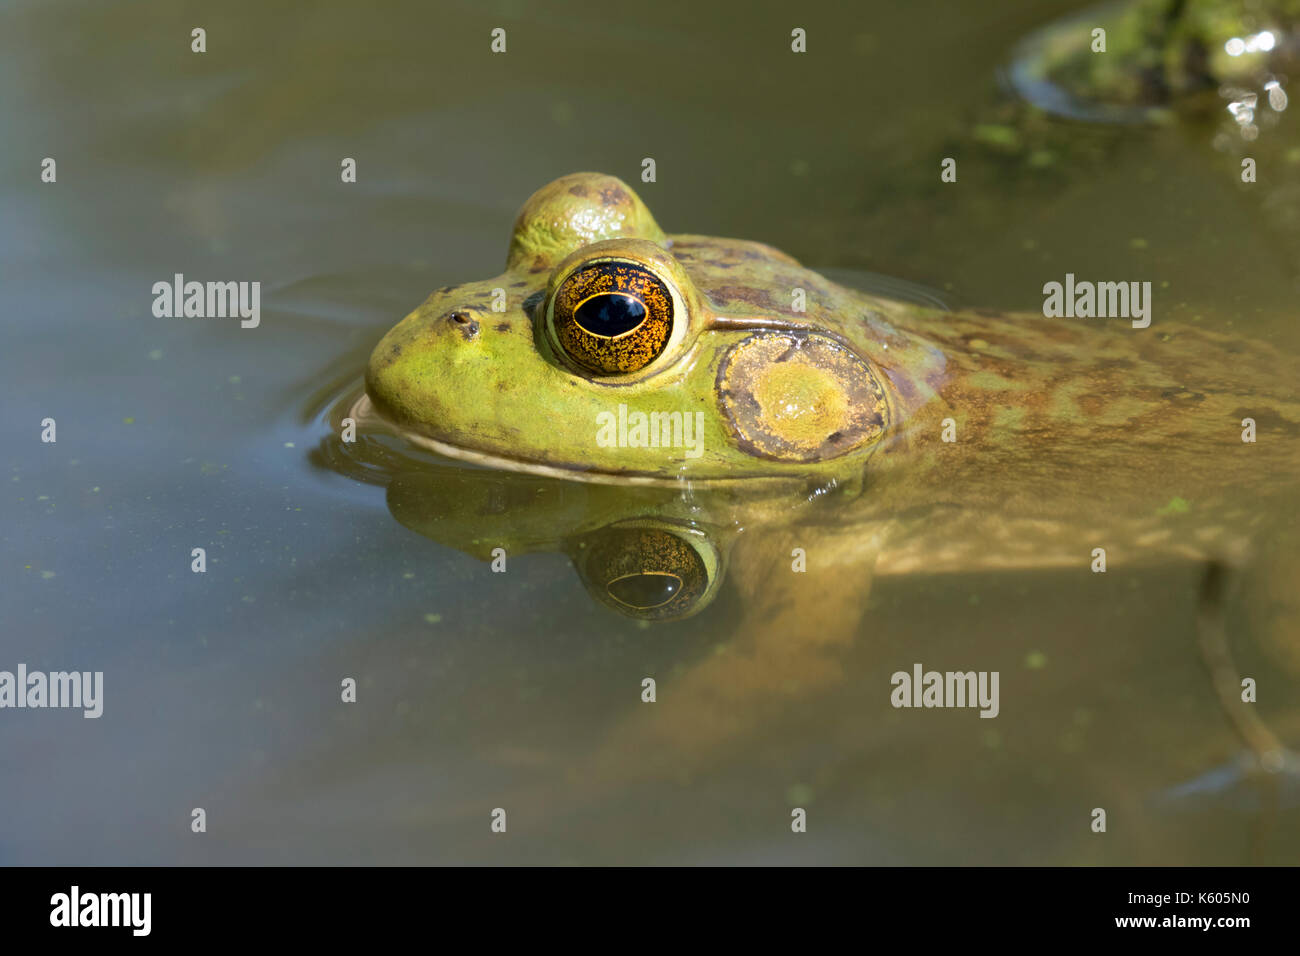 American billfrog (Lithobates catesbeianus) submerged in water in a forest lake, Ames, Iowa, USA - Stock Image